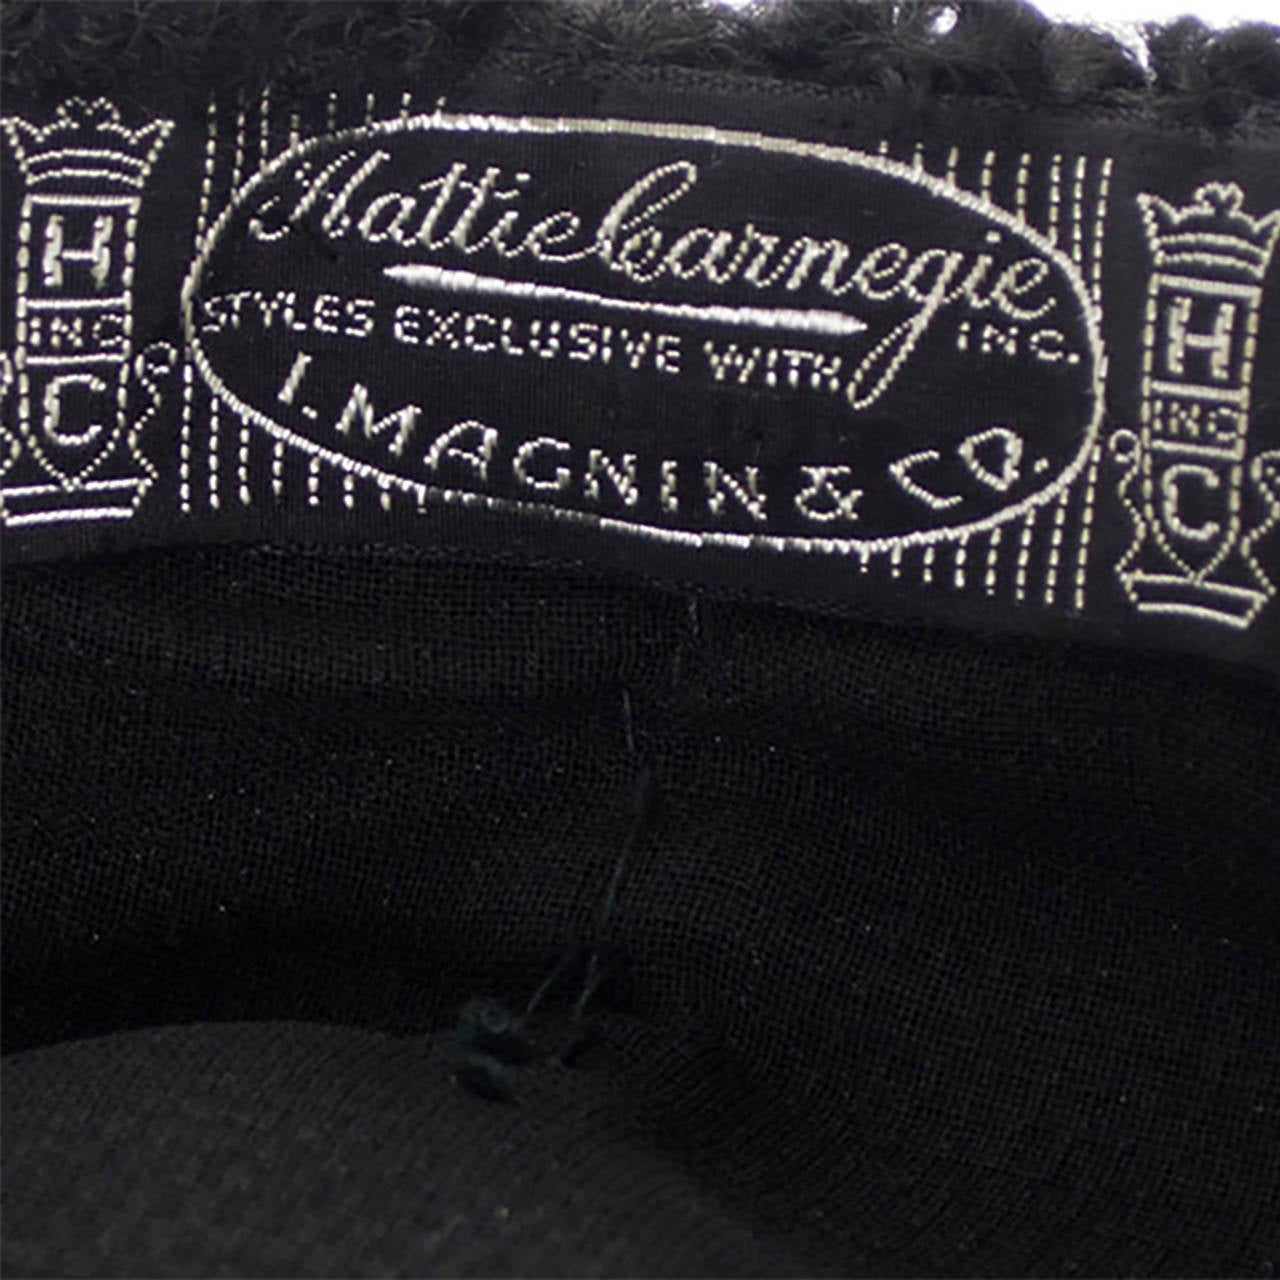 Hattie Carnegie Vintage Hat From I Magnin Curly Lambswool & Velvet Newsboy Cap  In Excellent Condition For Sale In Portland, OR